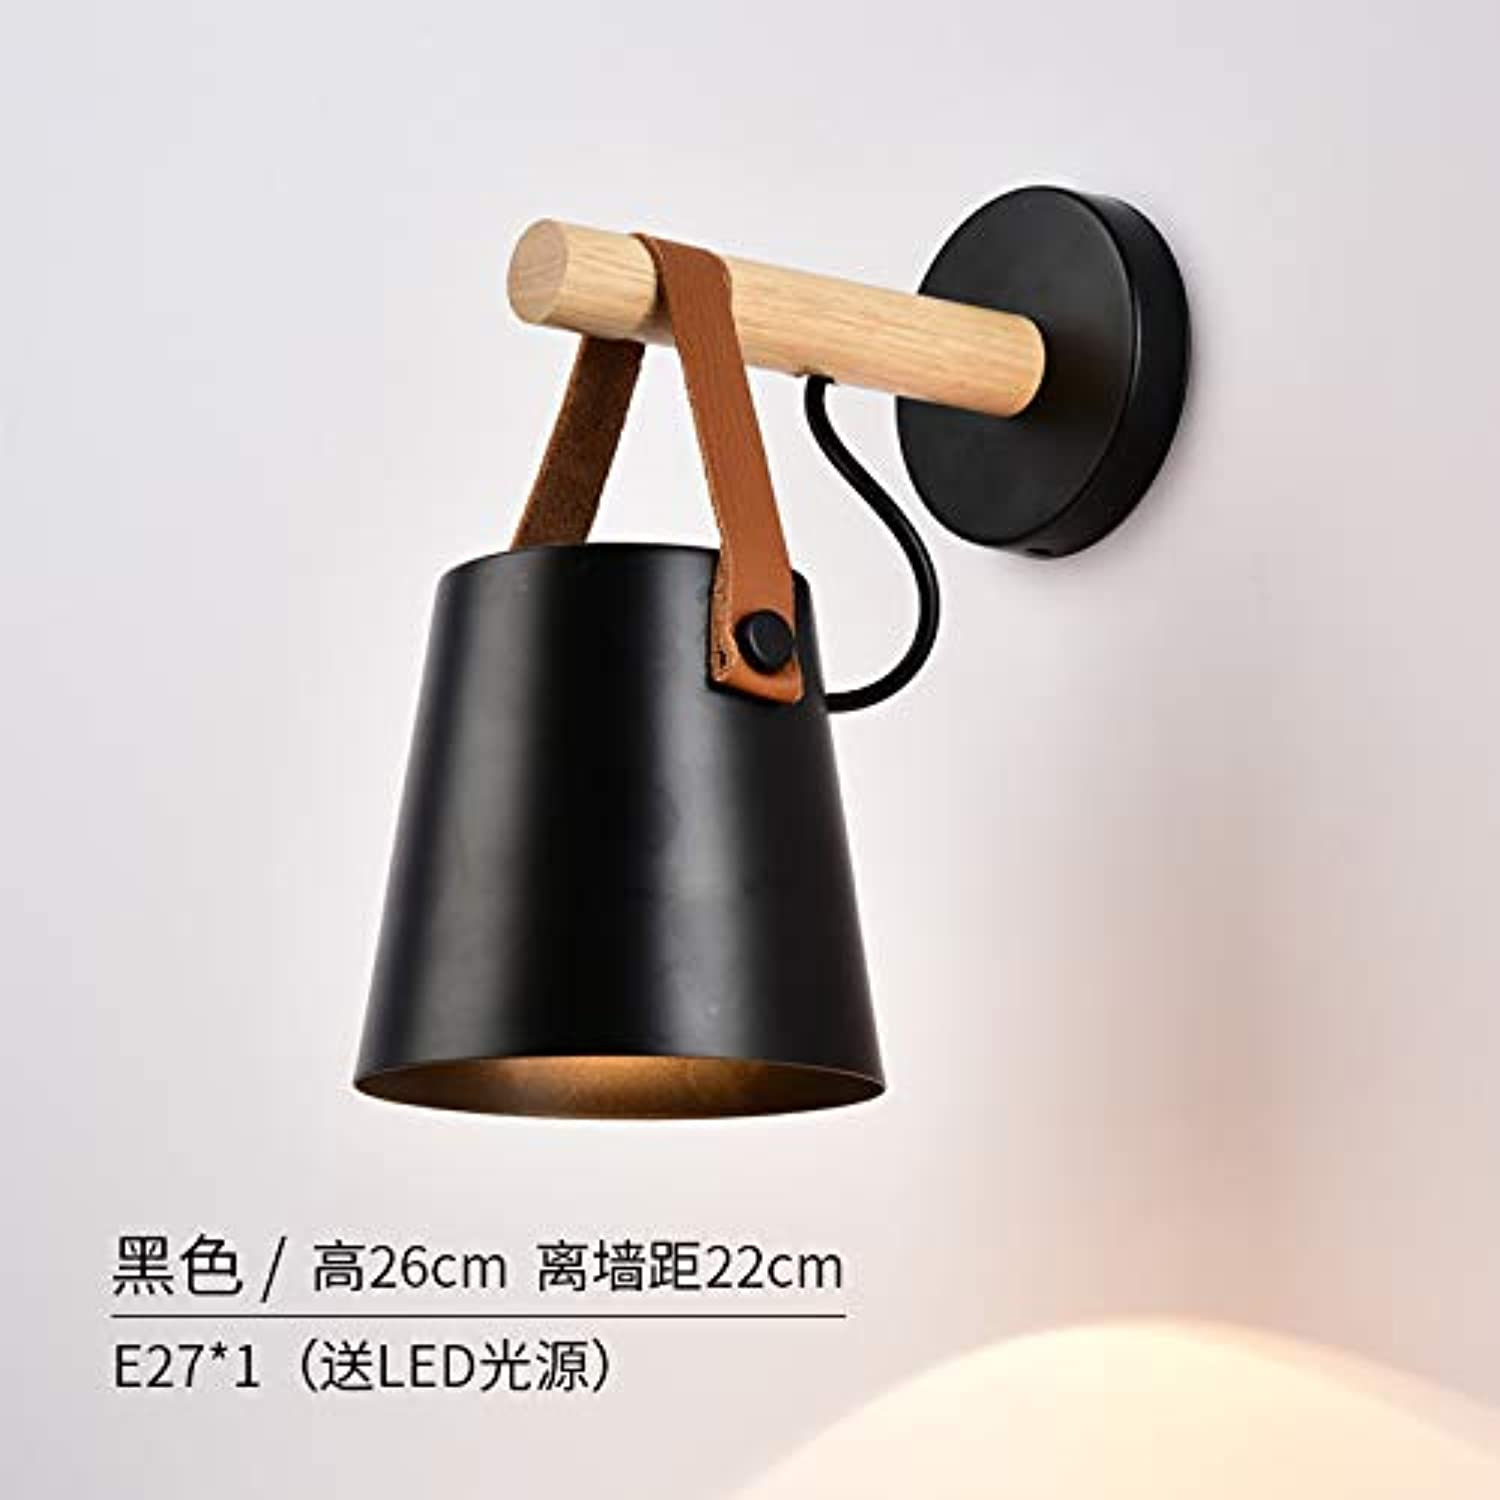 Led Wall Lamp Modern Simple Living Room North European And American Restoration Creative Schlafzimmer Bedside Stairway Balcony Iron Single Head Belt,Schwarze Led -Lichtquelle